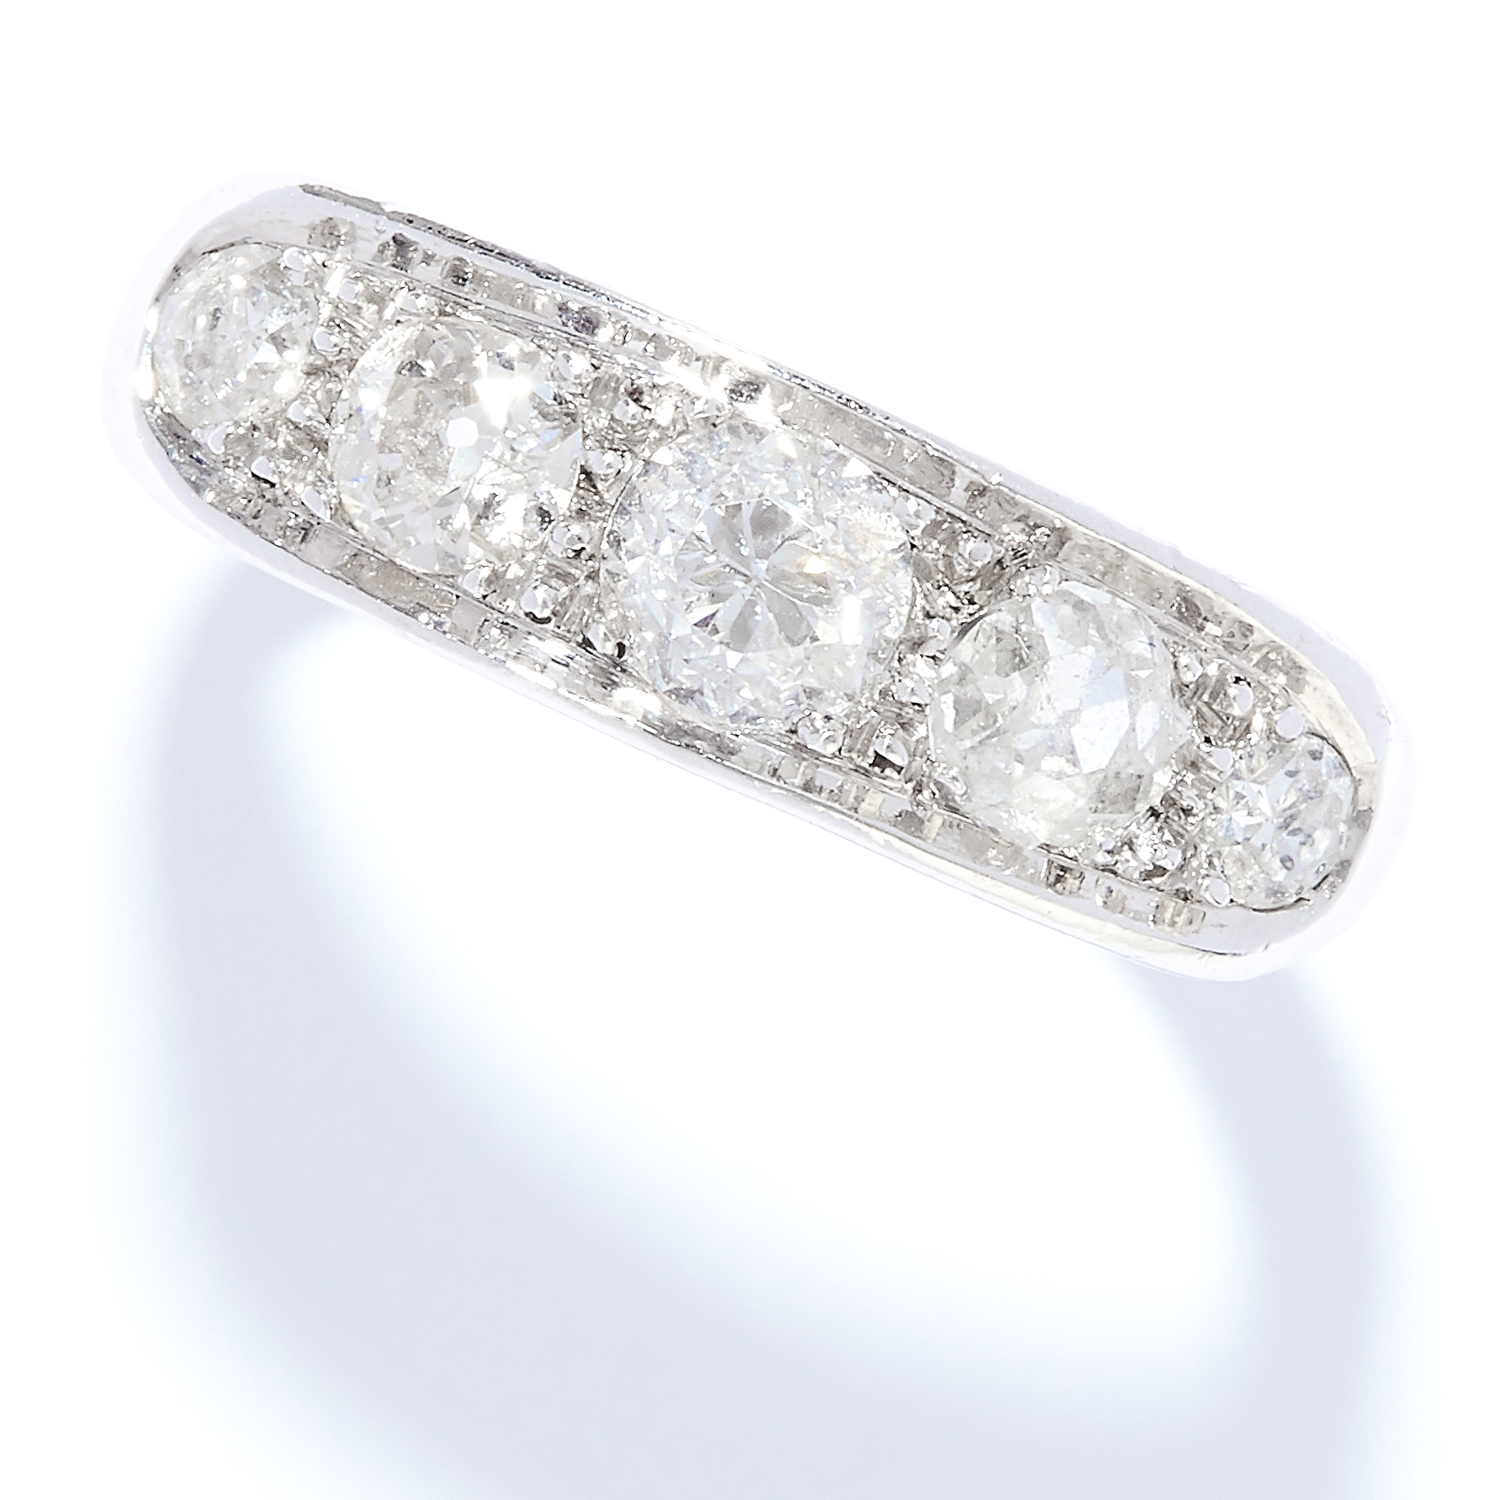 Los 37 - DIAMOND FIVE STONE RING in white gold or platinum, set with five round cut diamonds, French assay